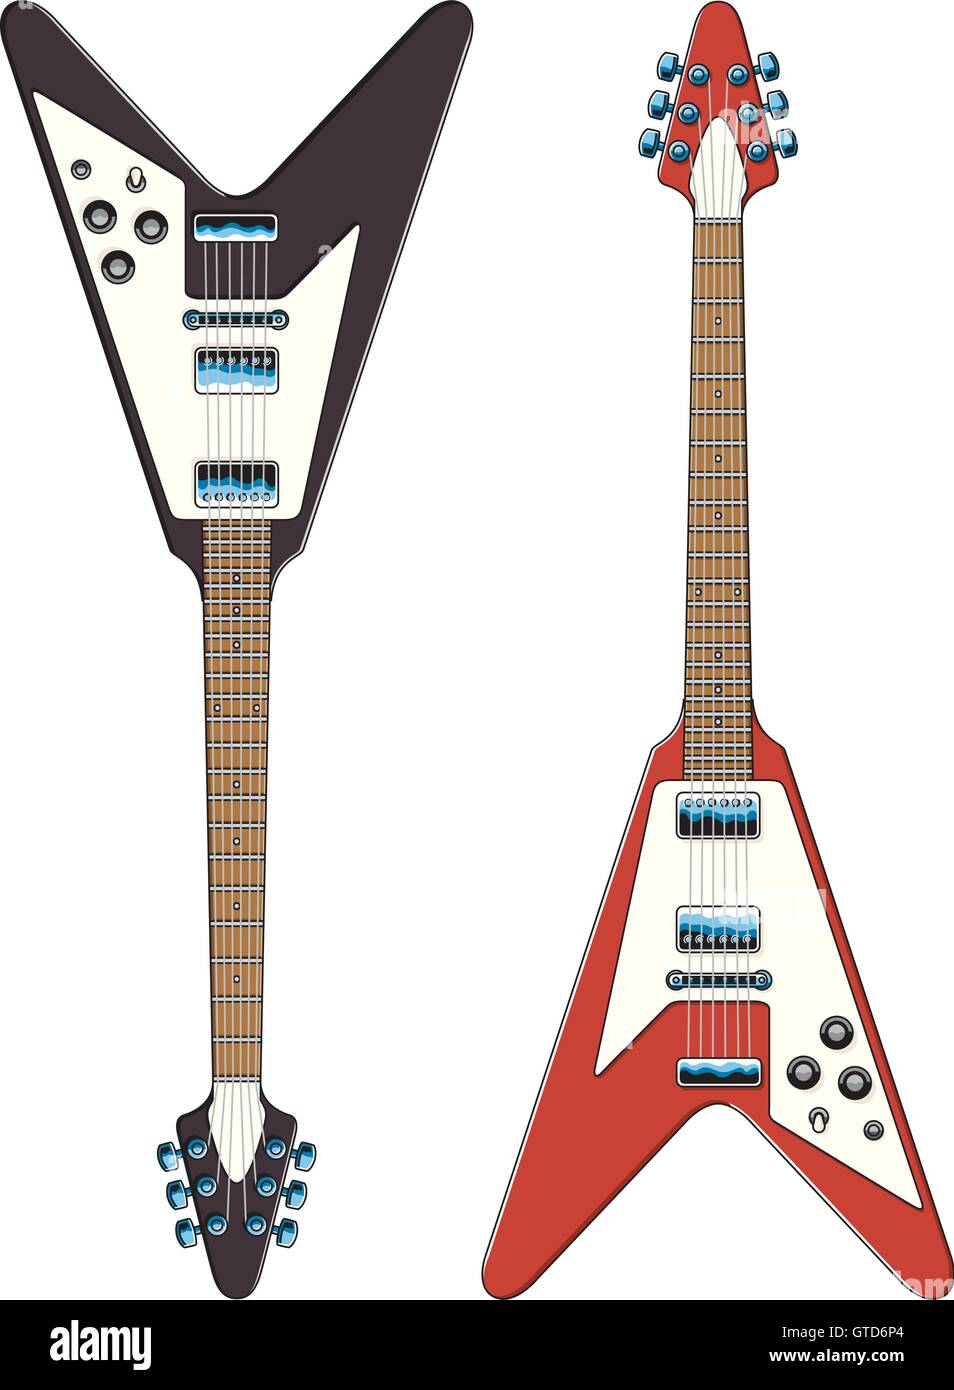 Illustration Vecteur De Guitare Les Dessins Vectoriels De Flying V